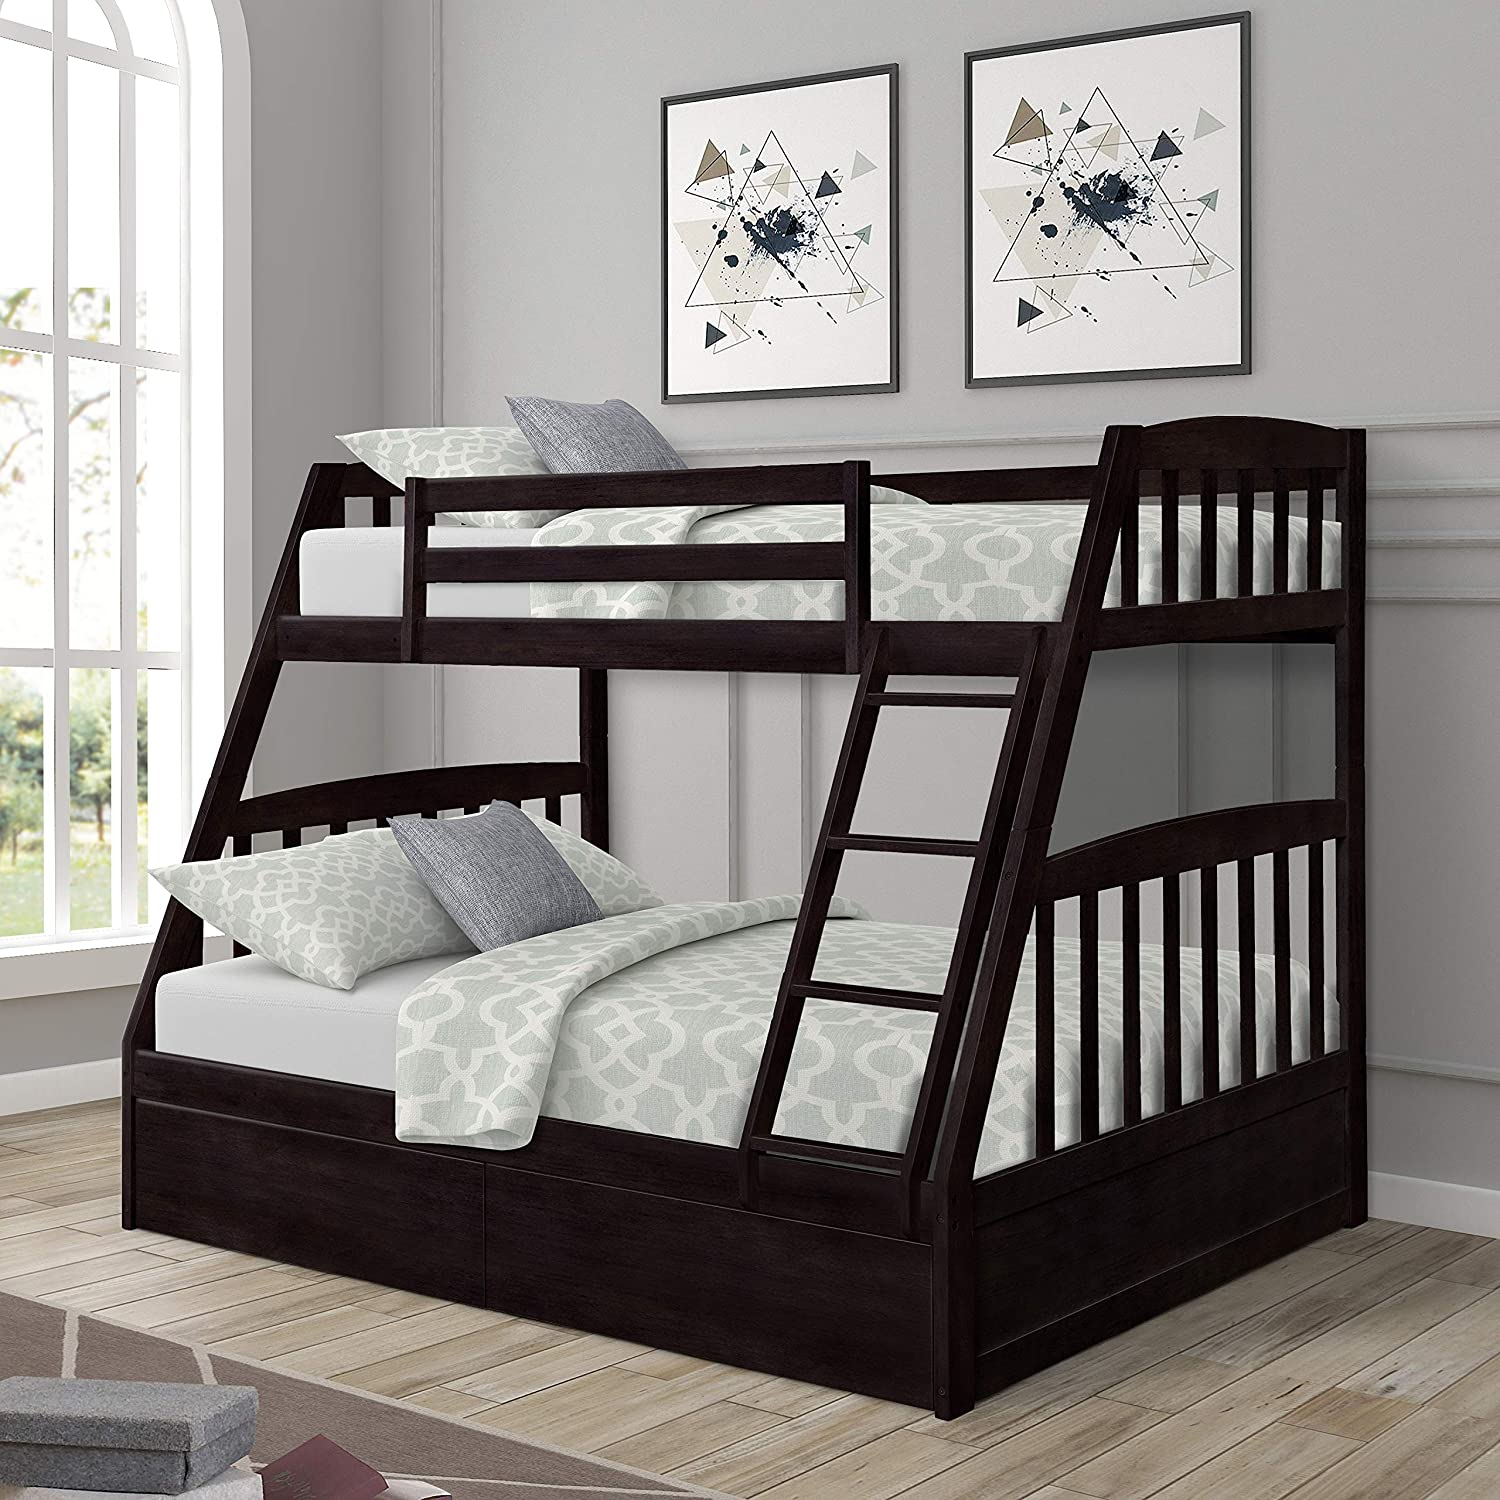 Amazon Com Twin Over Full Bunk Bed Solid Wood Bunk Bed With Two Storage Drawers Safety Rail And Stair Loft Espresso Kitchen Dining